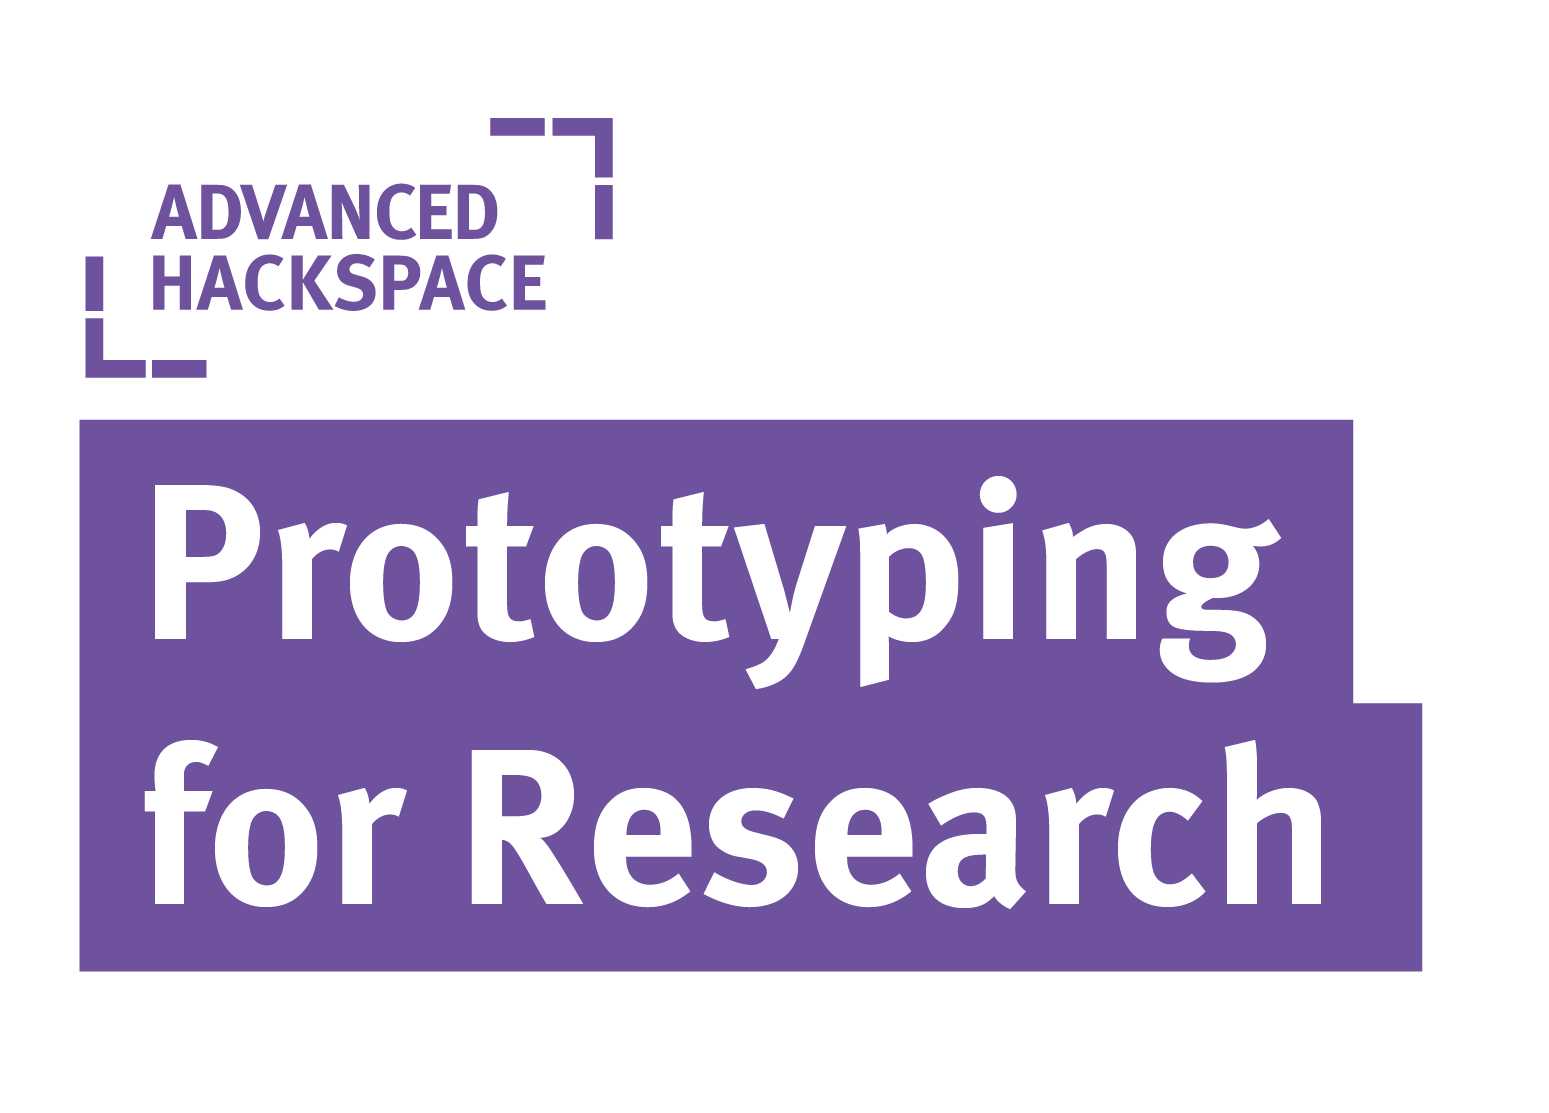 Prototyping for Research logo